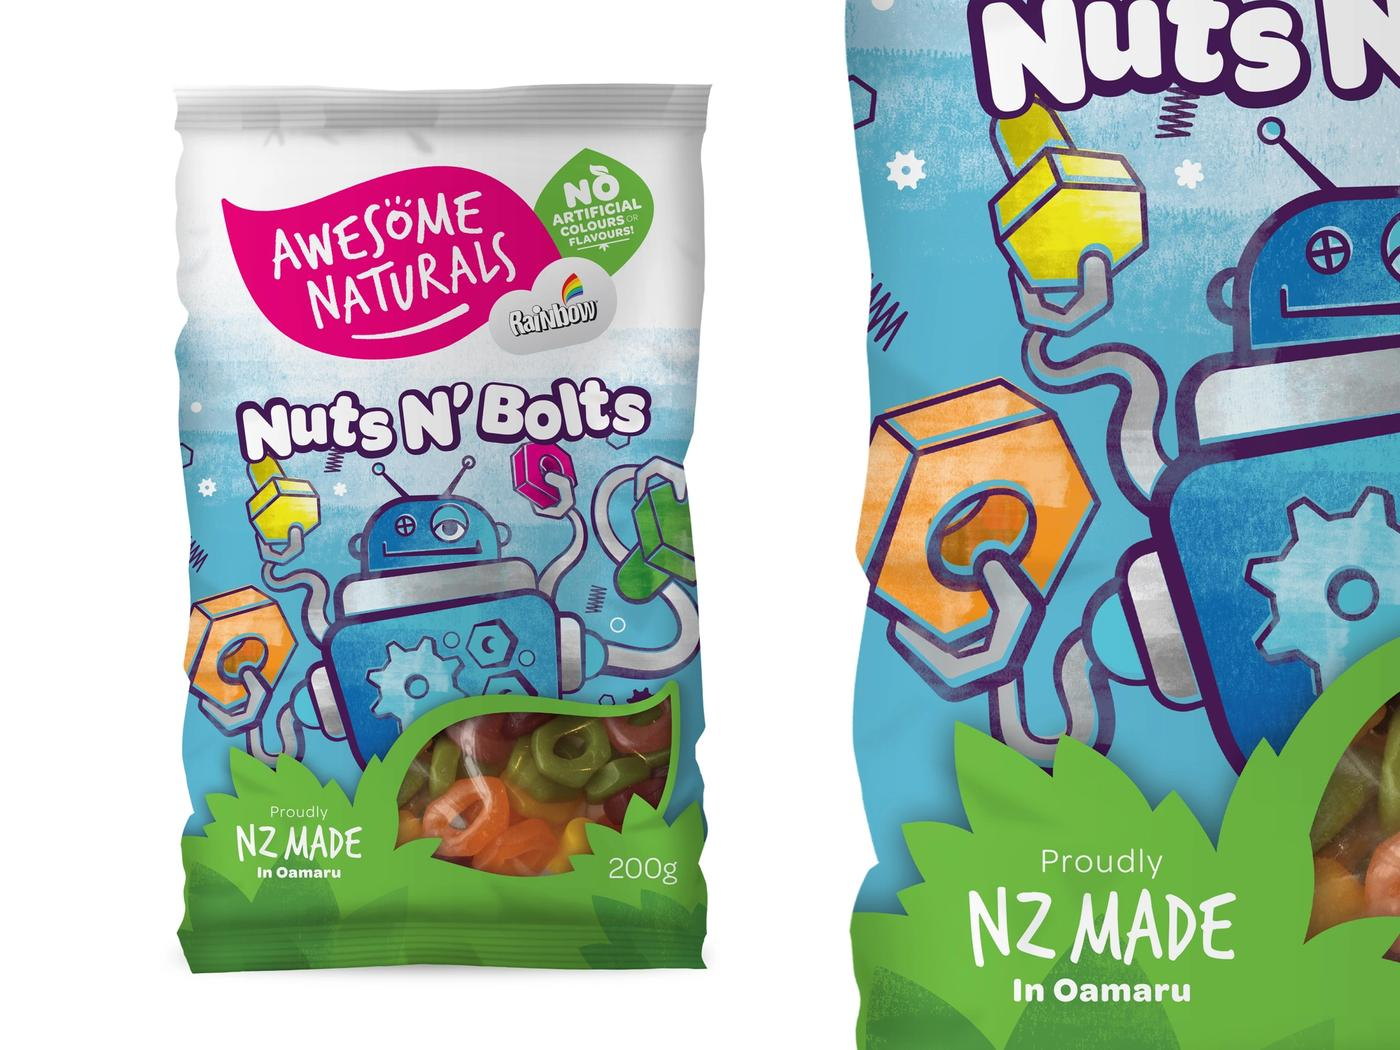 Awesome naturals nuts & bolts